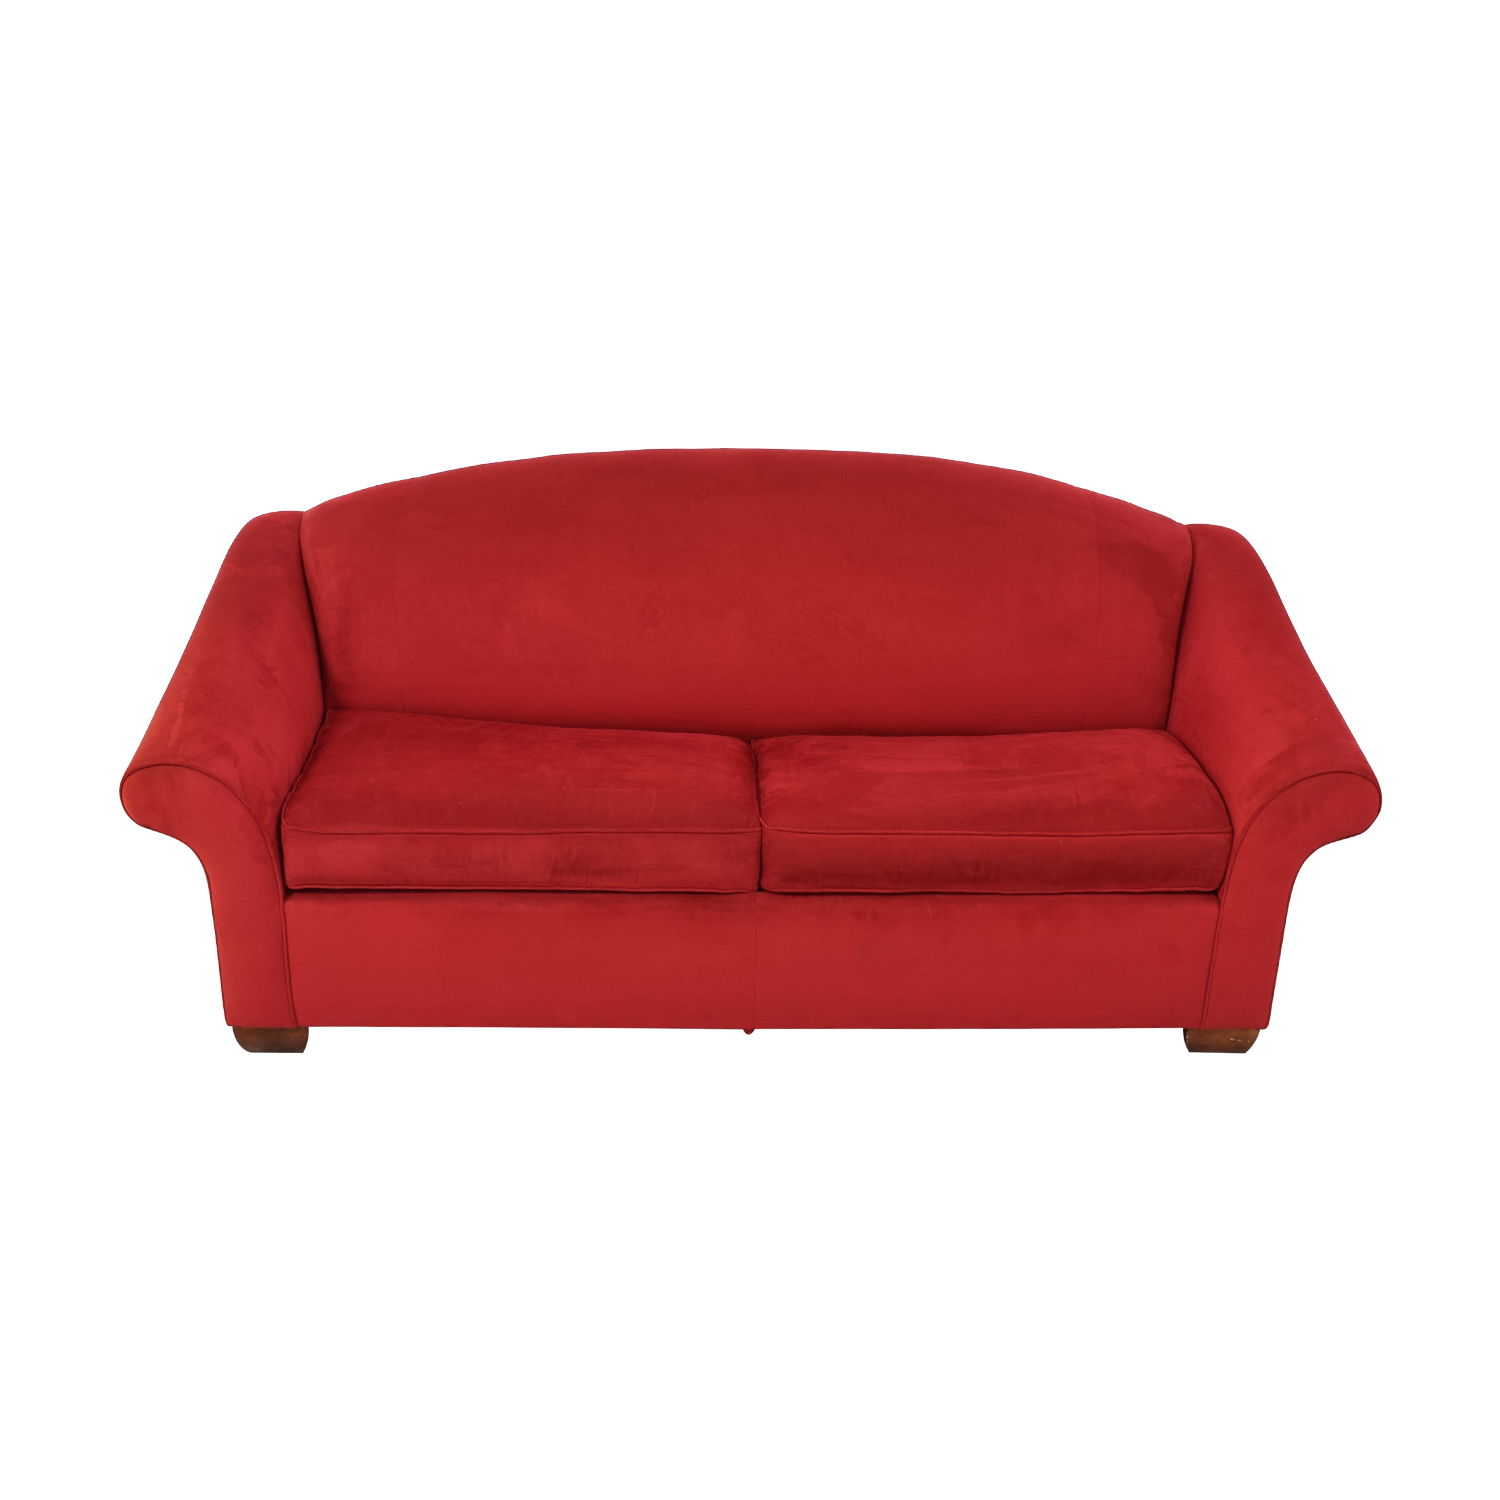 Kravet Kravet Red Sleeper Sofa red